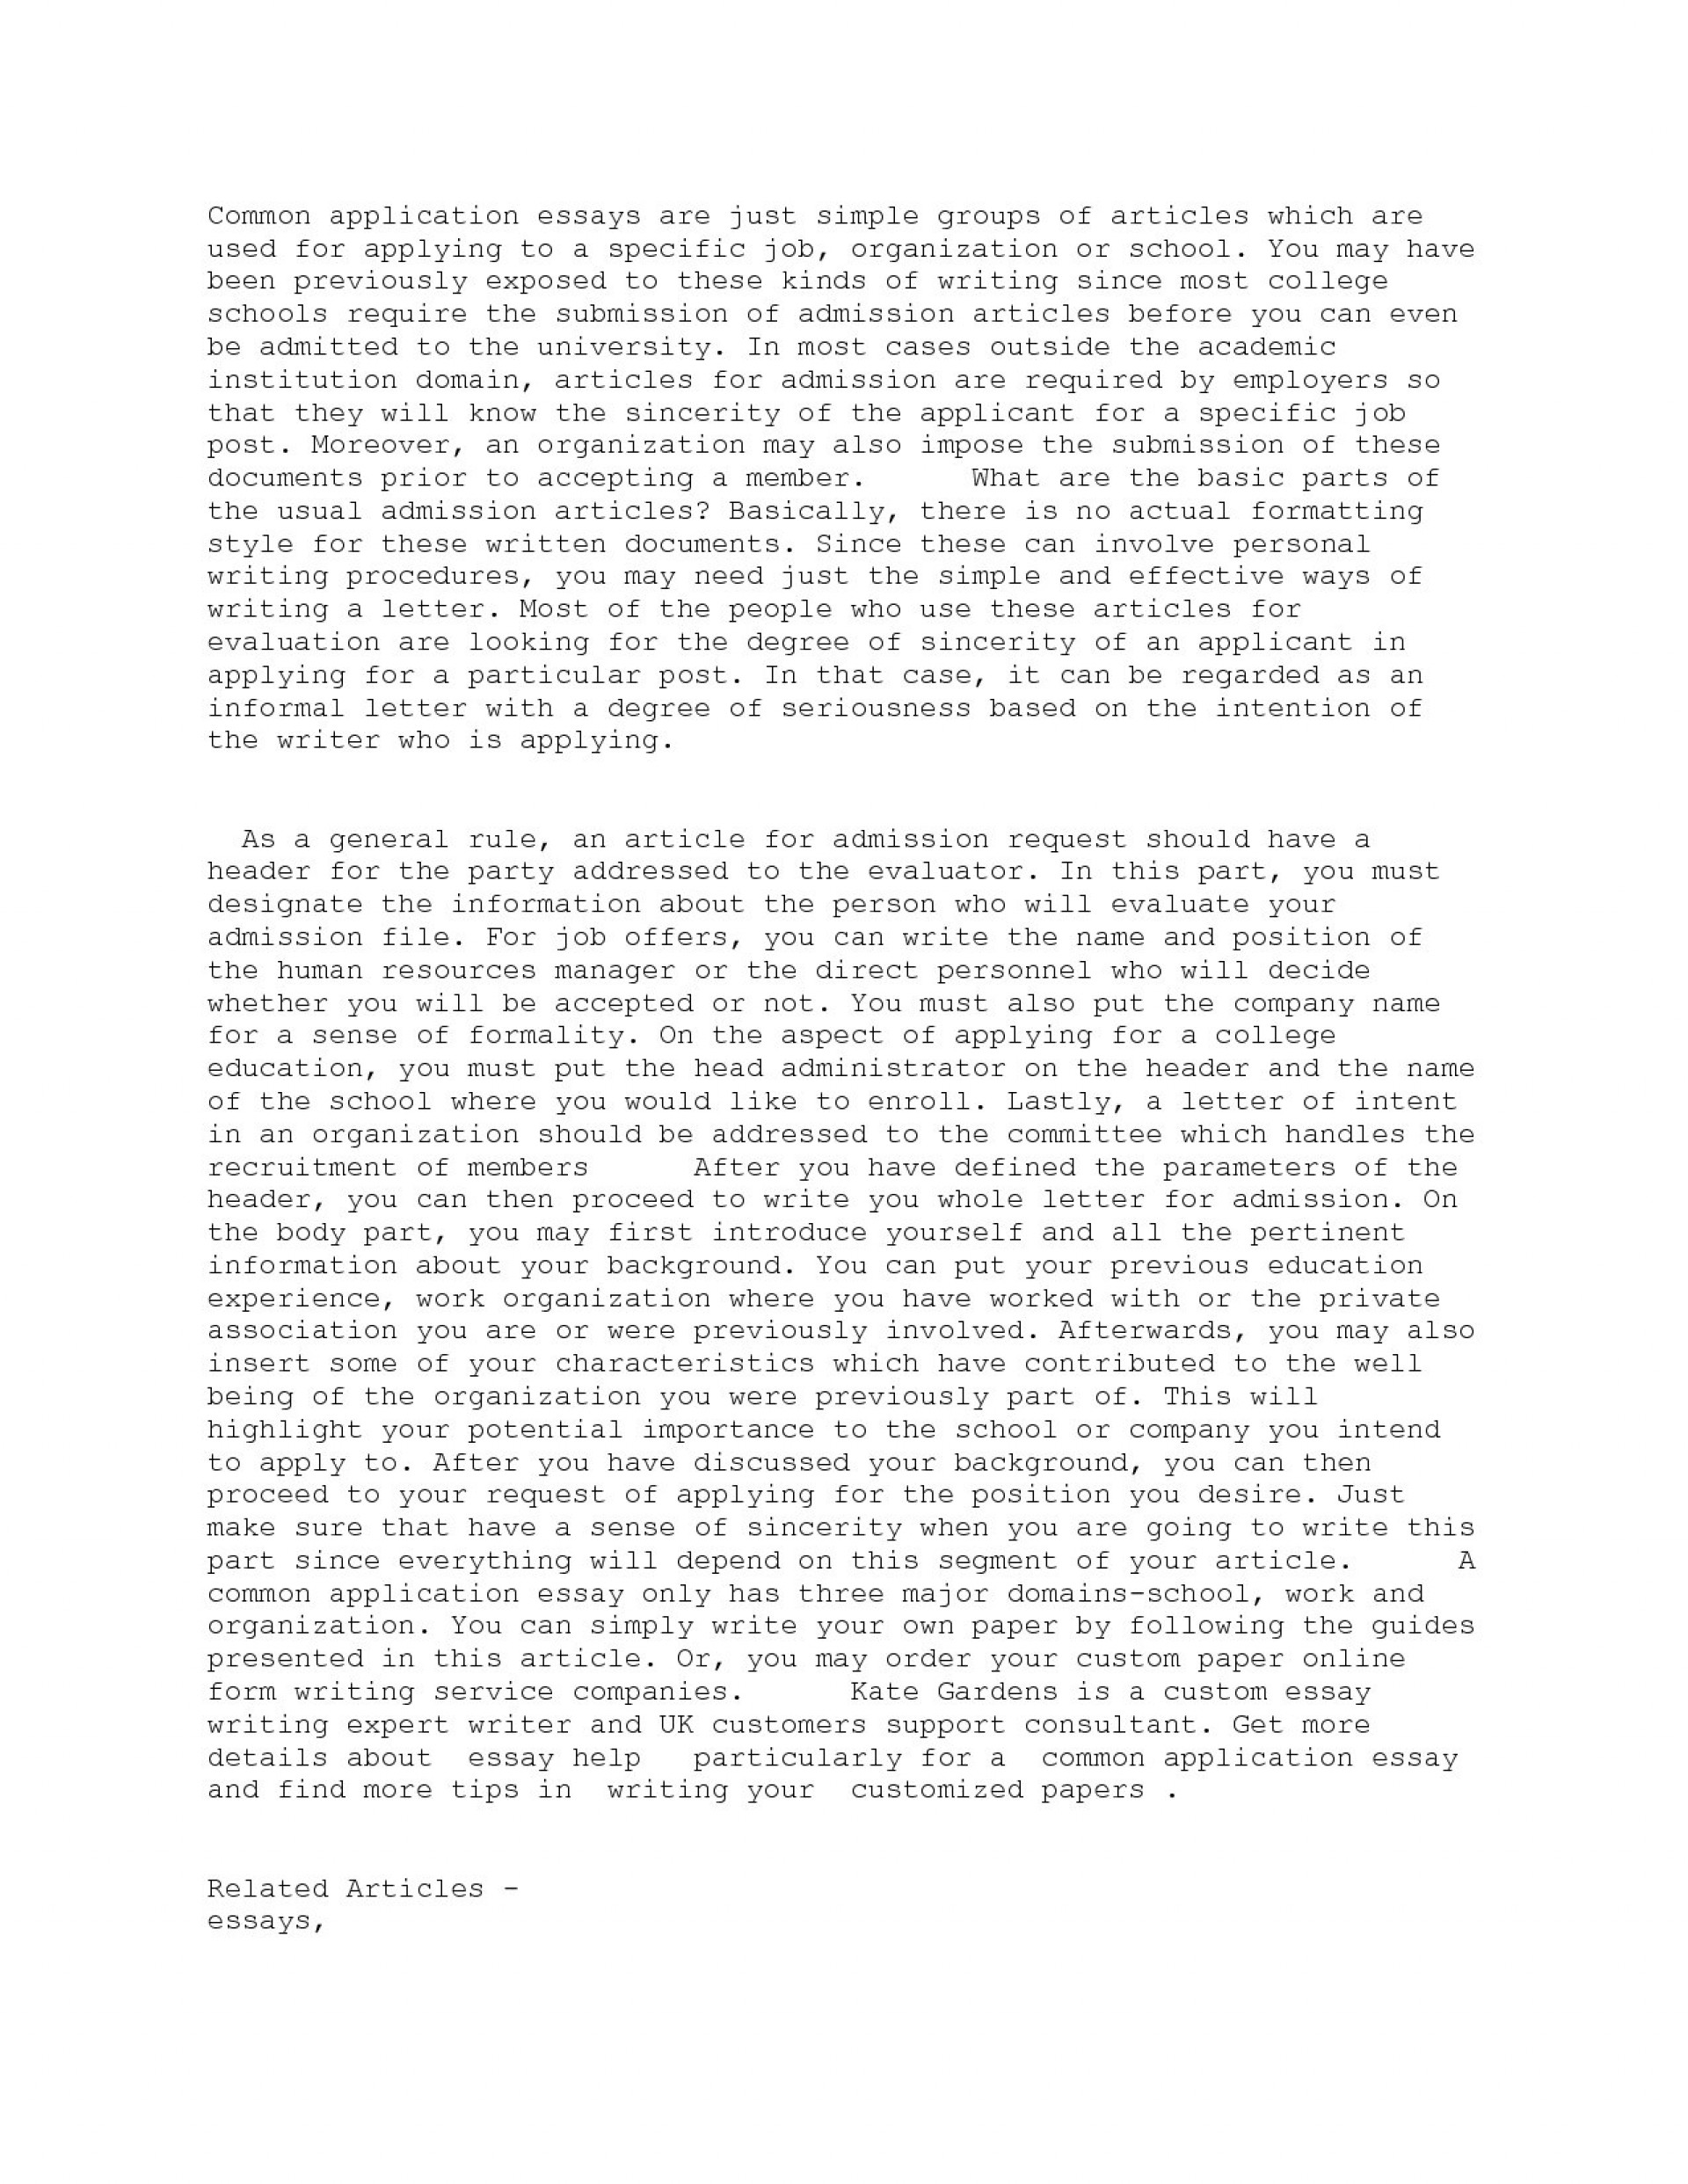 015 Common App College Essay Example Examples Of Essays For Application Transfer Ess Striking Word Limit Topics Samples 1920